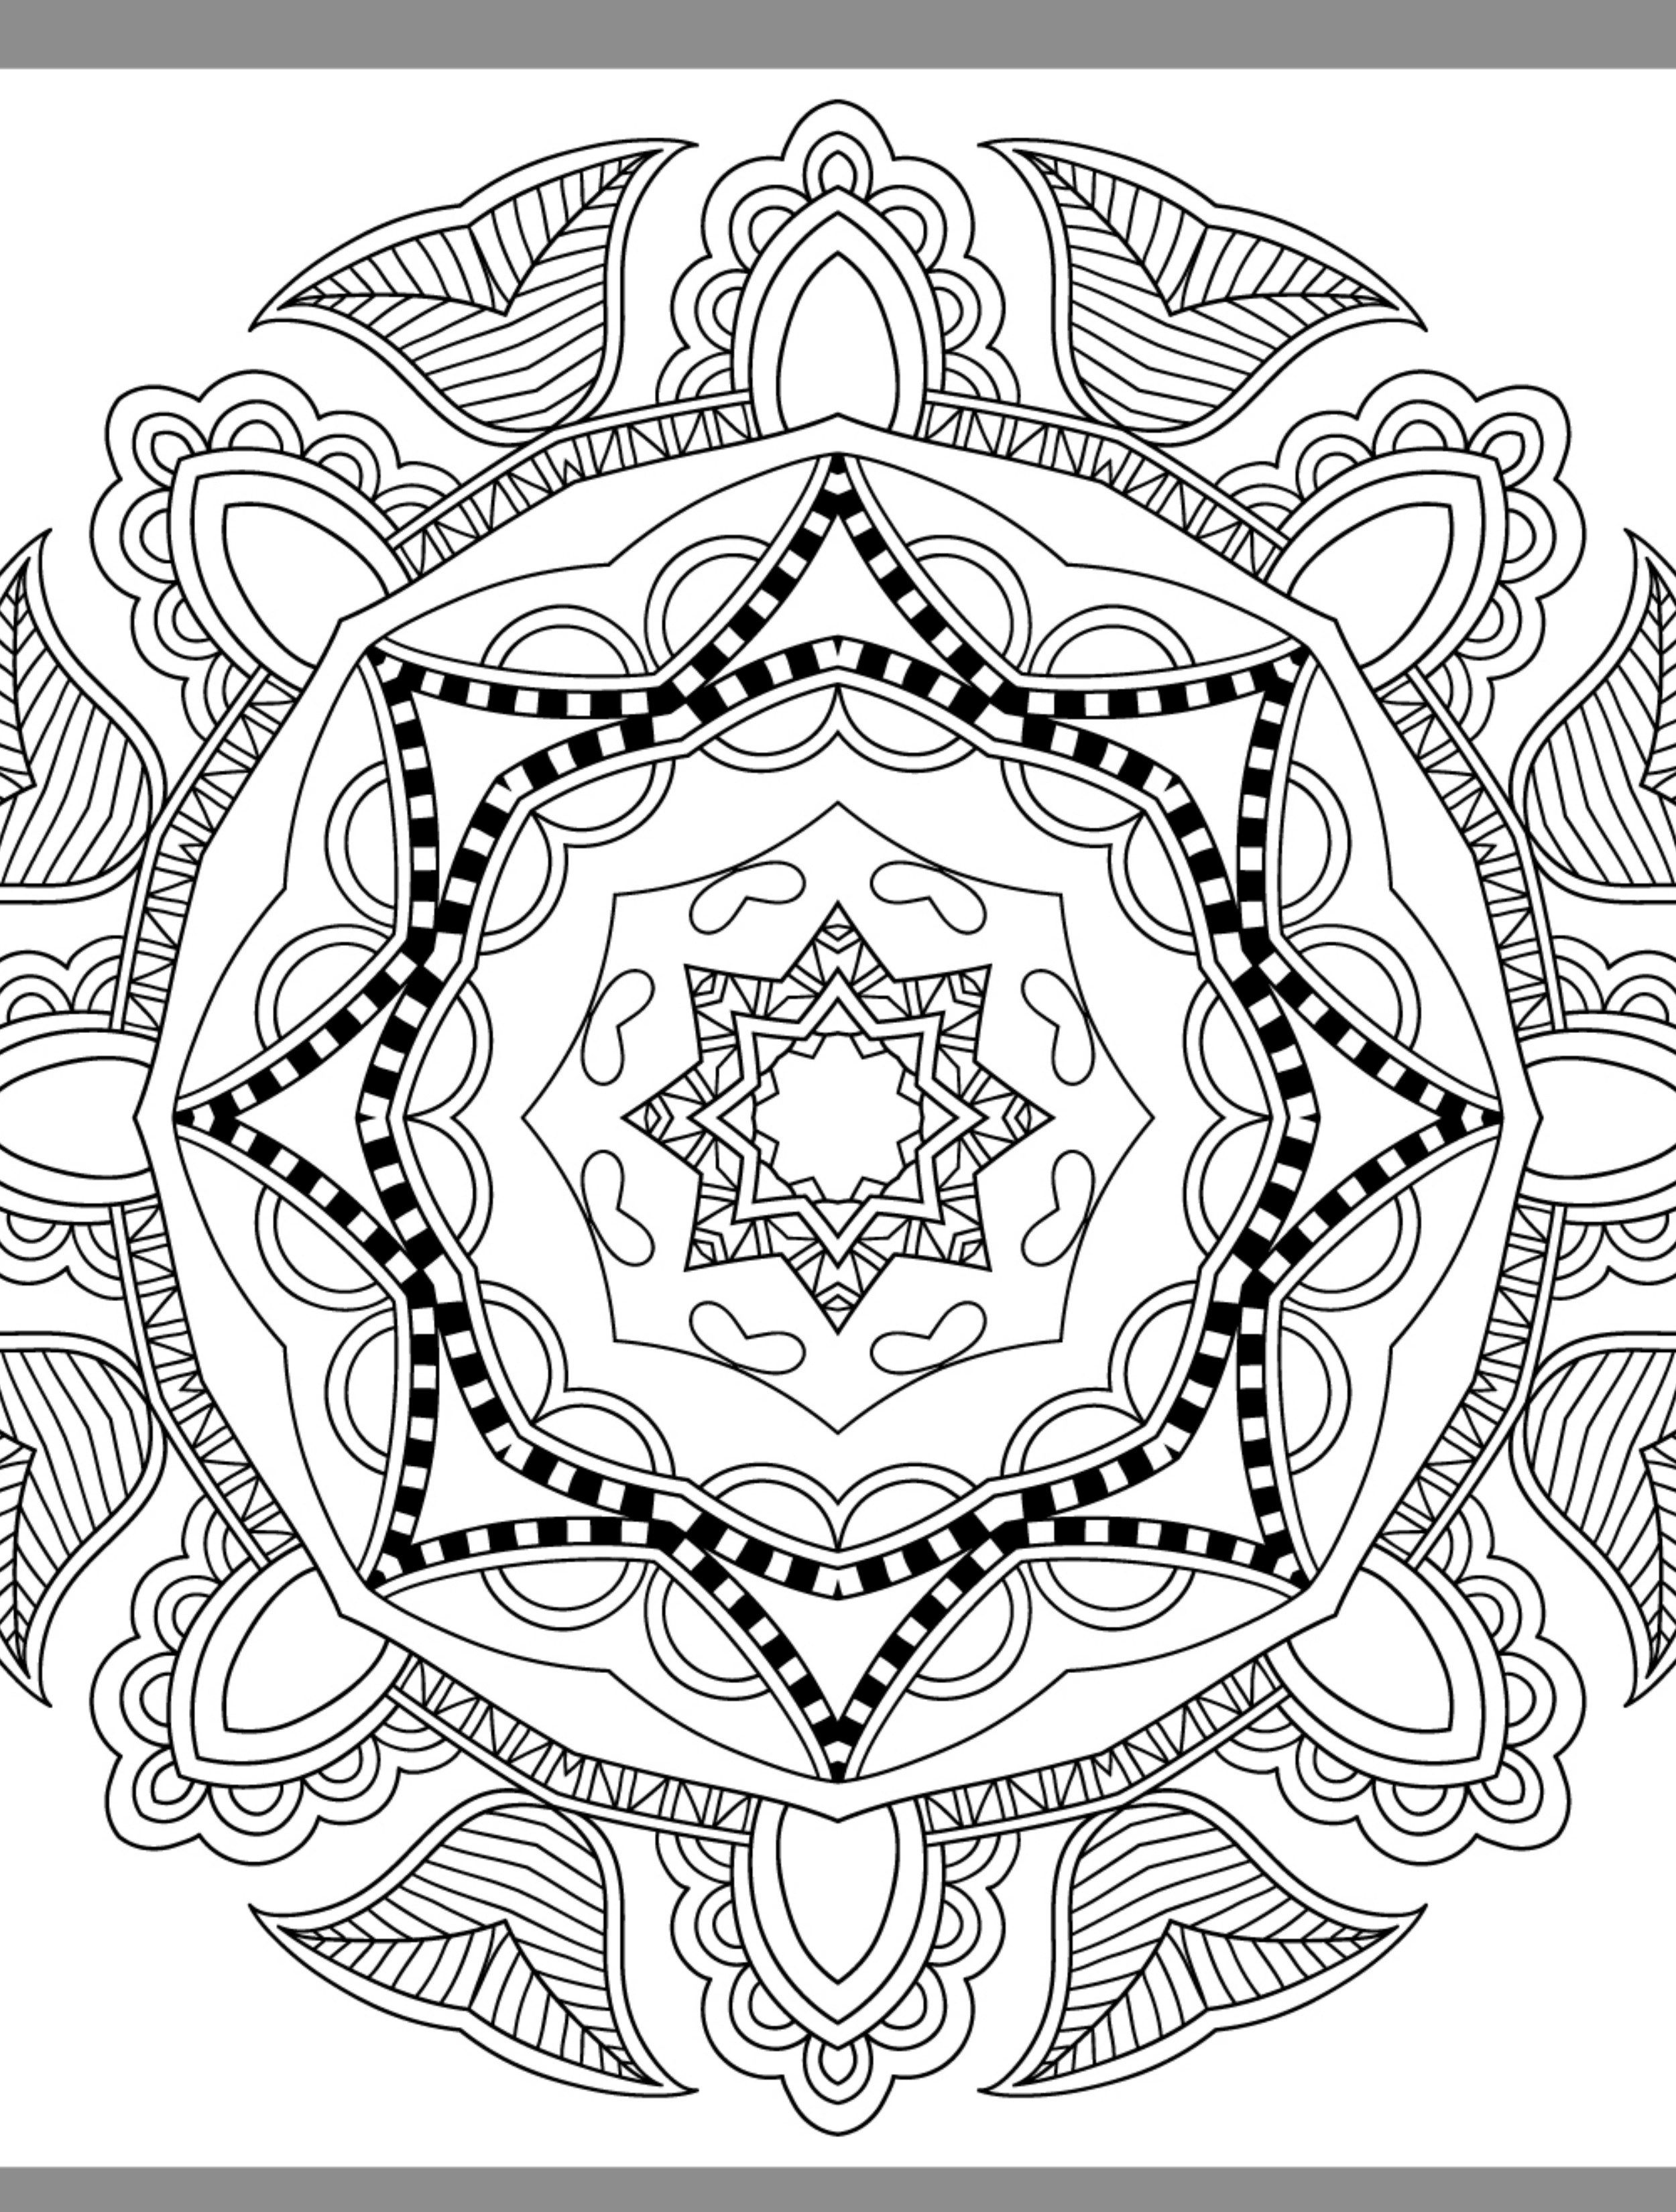 cool mandalas coloring pages | 24 More Free Printable Adult Coloring Pages | Halloween ...